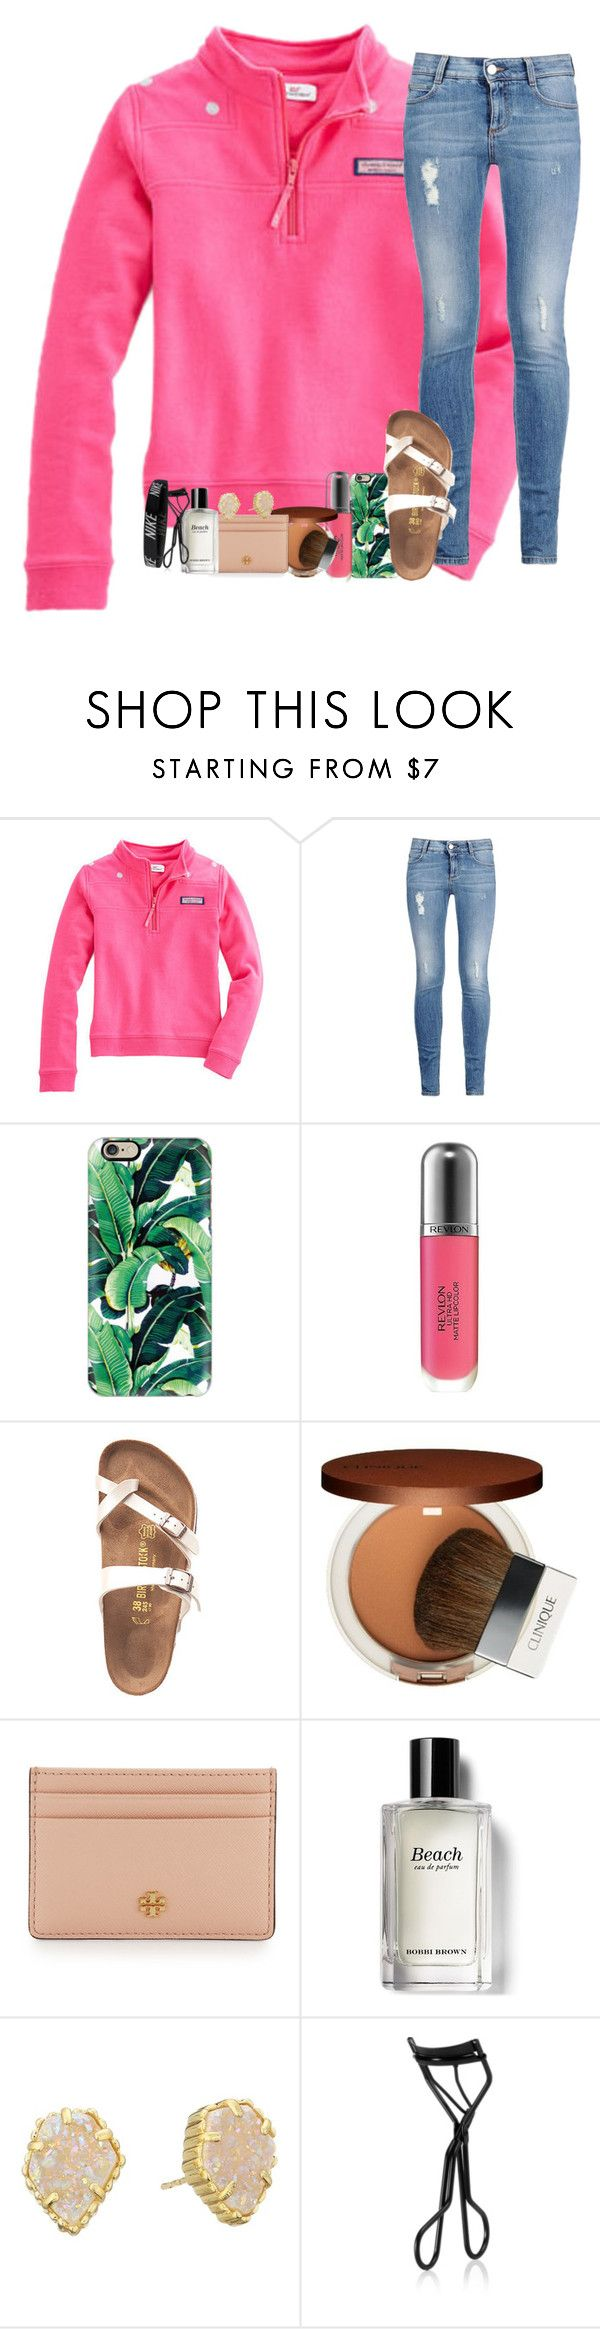 """possibly may be getting a vv pullover so that's exciting"" by legitmaddywill ❤ liked on Polyvore featuring Vineyard Vines, STELLA McCARTNEY, Casetify, Revlon, Birkenstock, Clinique, Tory Burch, Bobbi Brown Cosmetics, Kendra Scott and NARS Cosmetics"